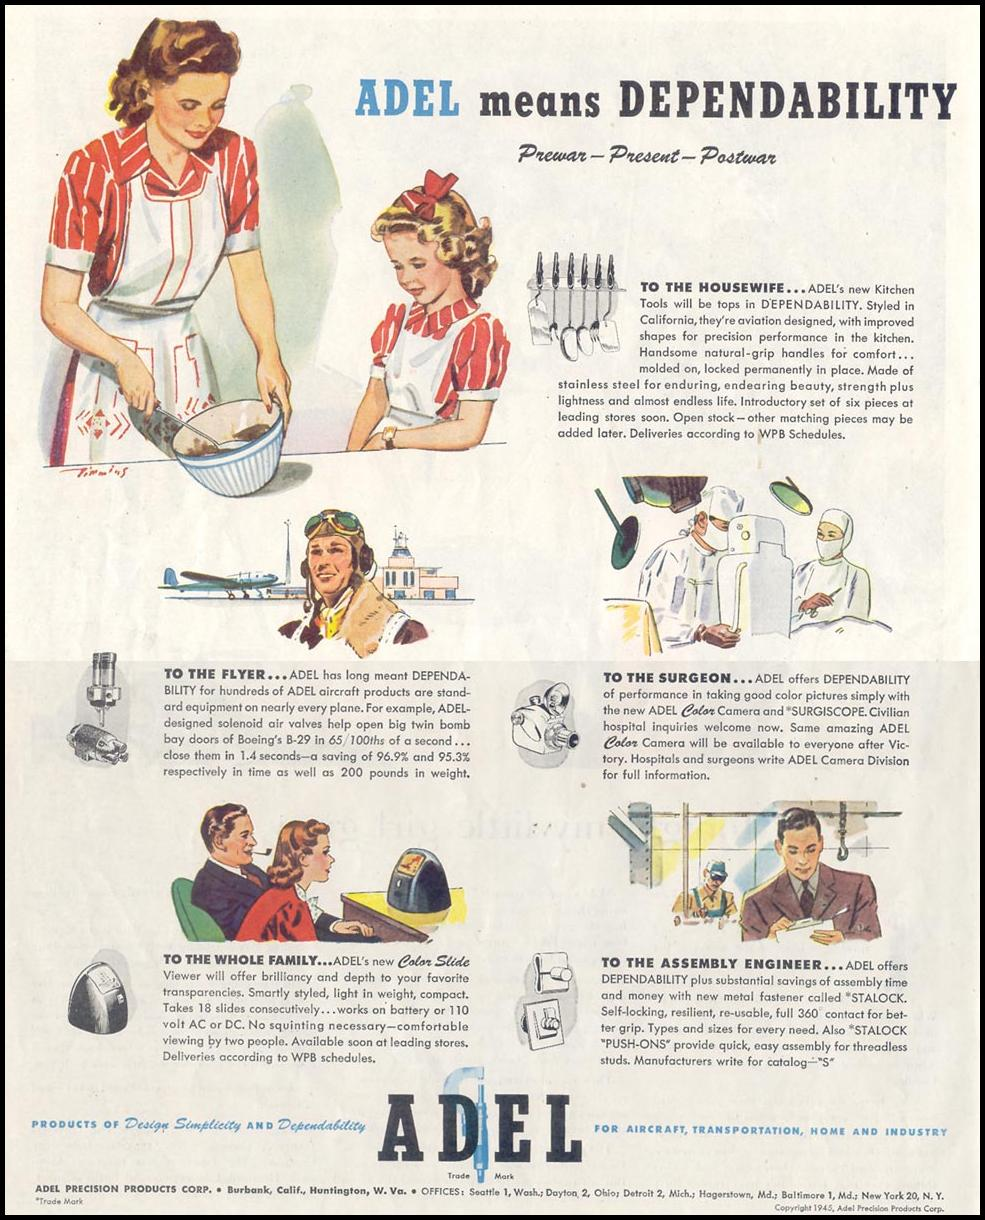 POSTWAR PRODUCTS SATURDAY EVENING POST 05/19/1945